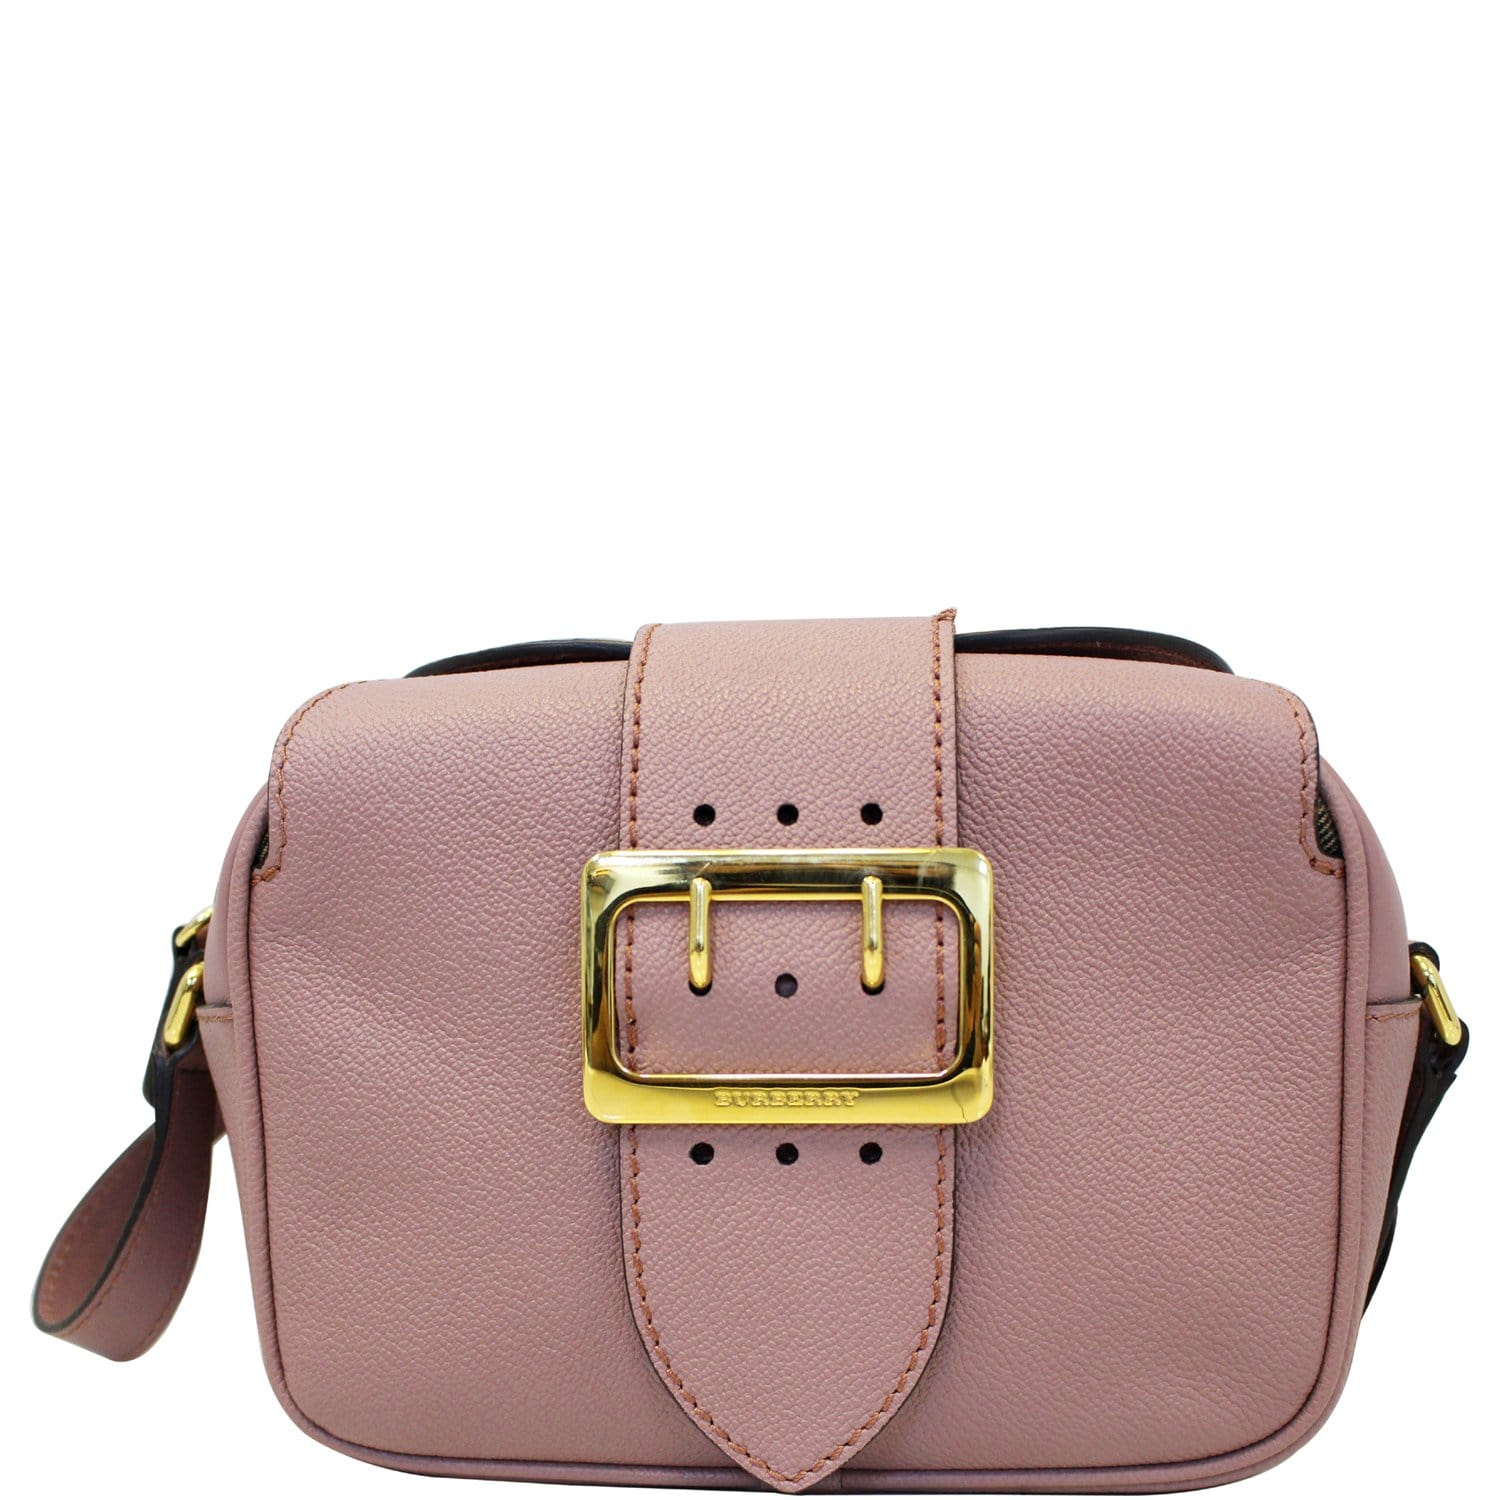 58c677b99a2 BURBERRY Medley Small Buckle Crossbody Bag Light Pink-US